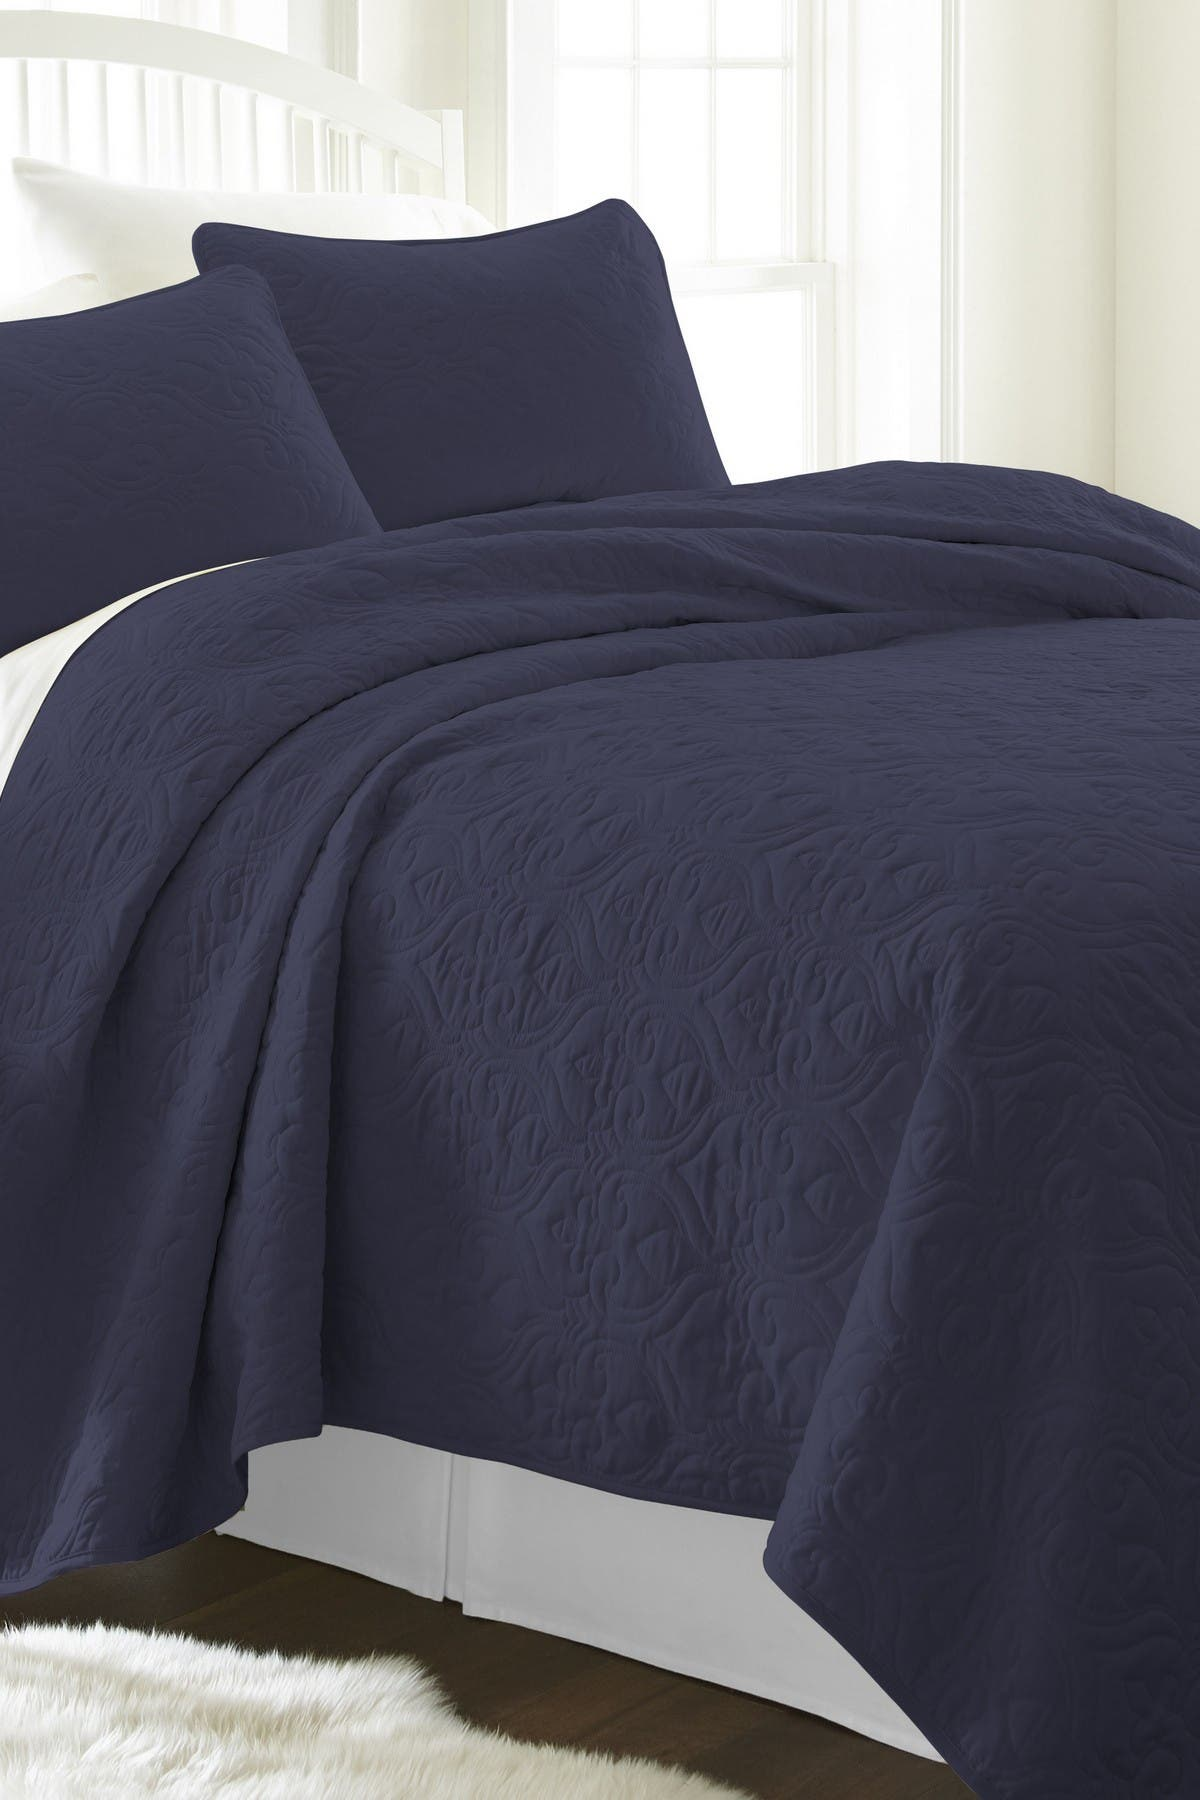 Image of IENJOY HOME Home Spun Premium Ultra Soft Damask Pattern Quilted Full/Queen Coverlet Set - Navy